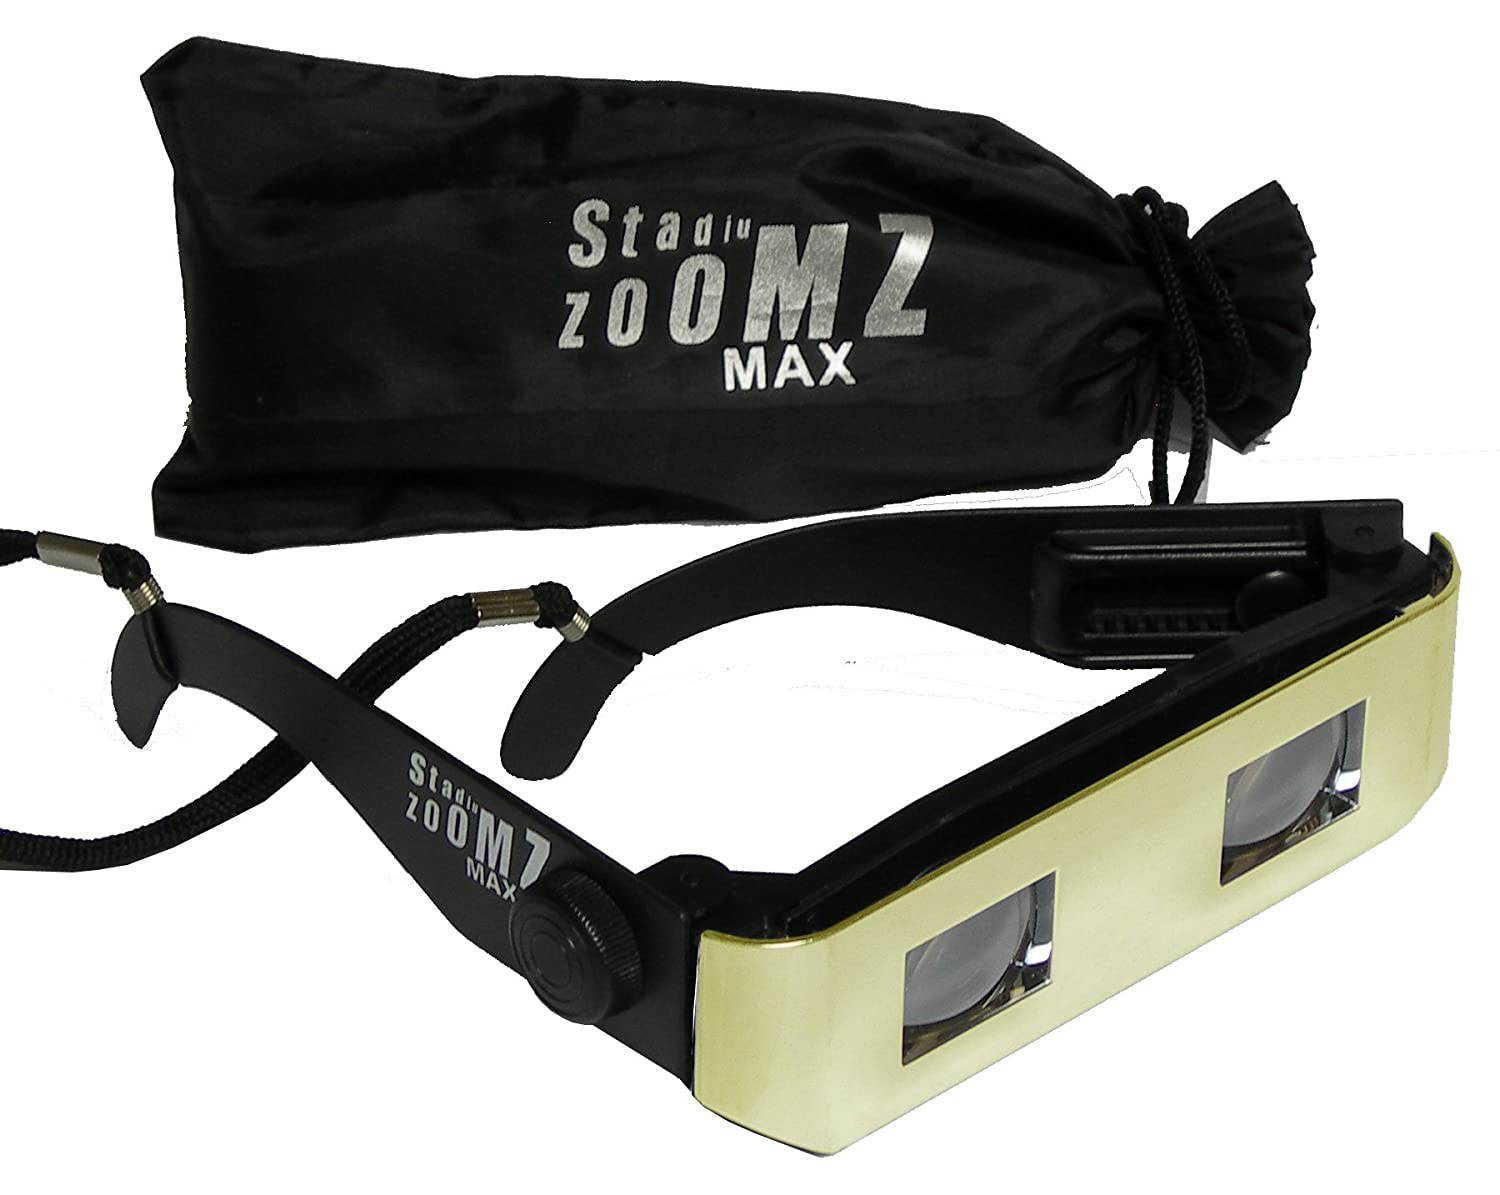 StadiumZoomz Max Opera Glasses 4X - Gold. Telescope Lenses, Zoom in for Theater,Concerts,Boating,etc Sperry Mfg